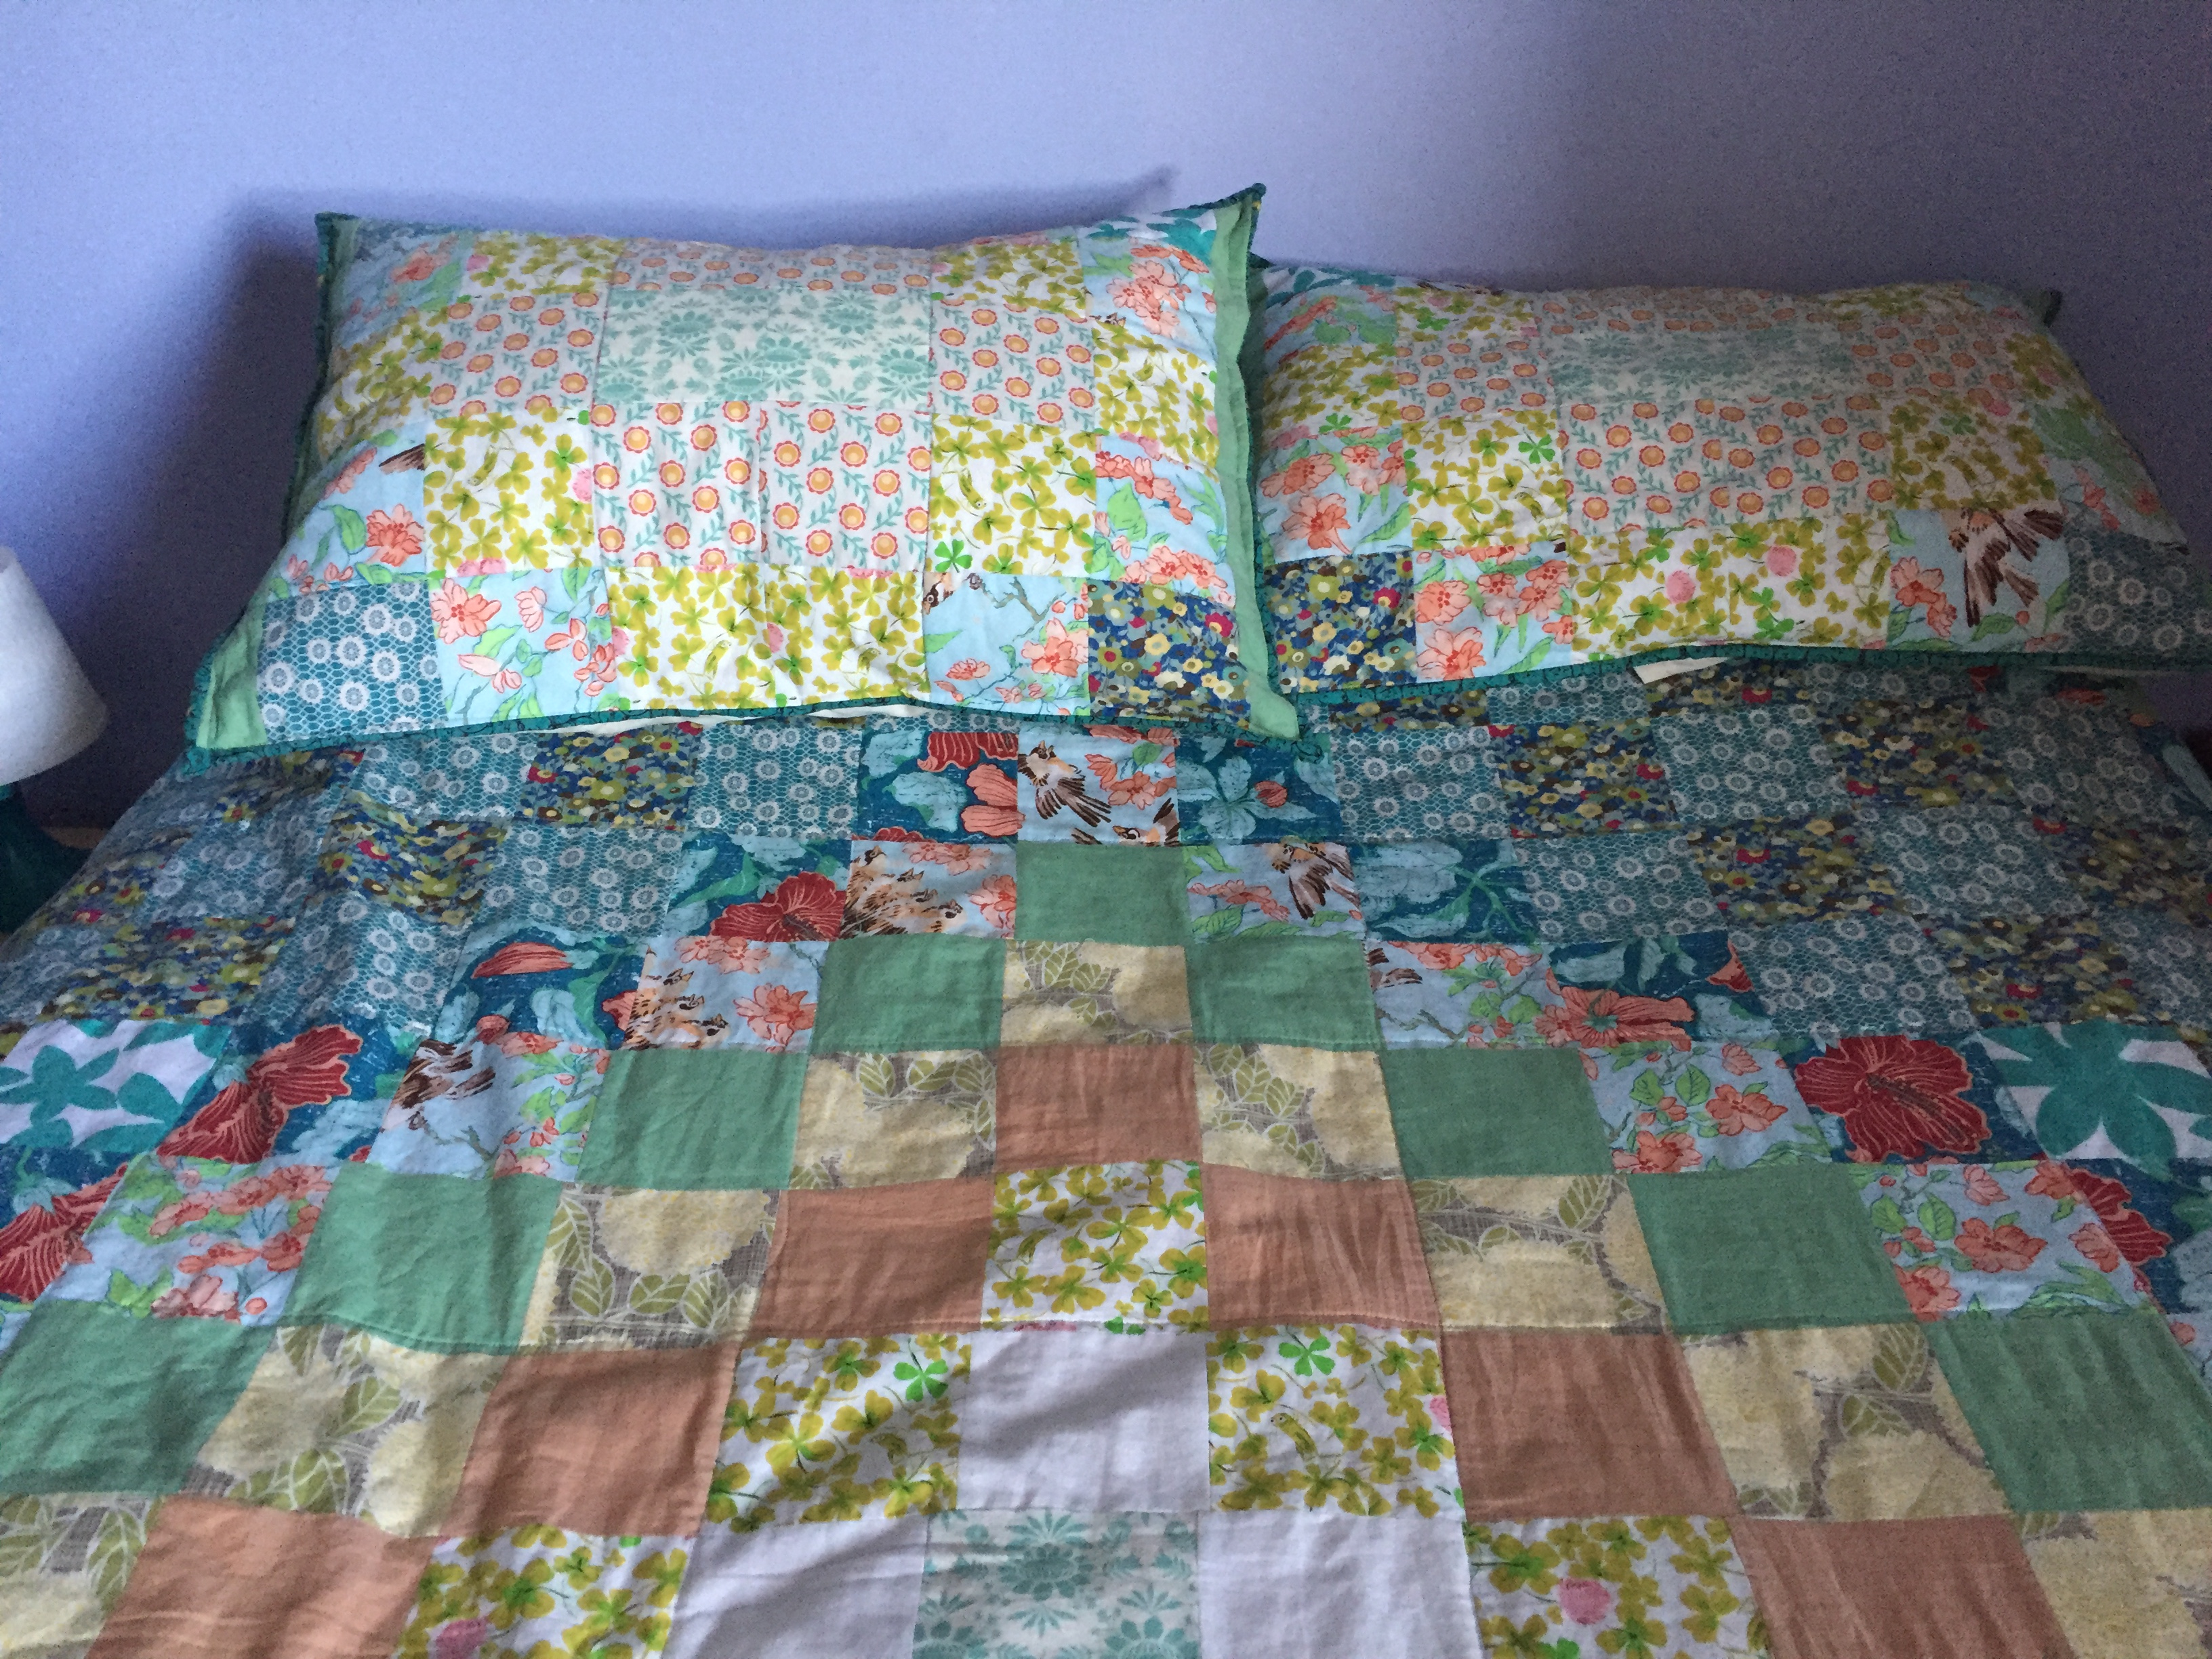 BEHOLD! QUILT!